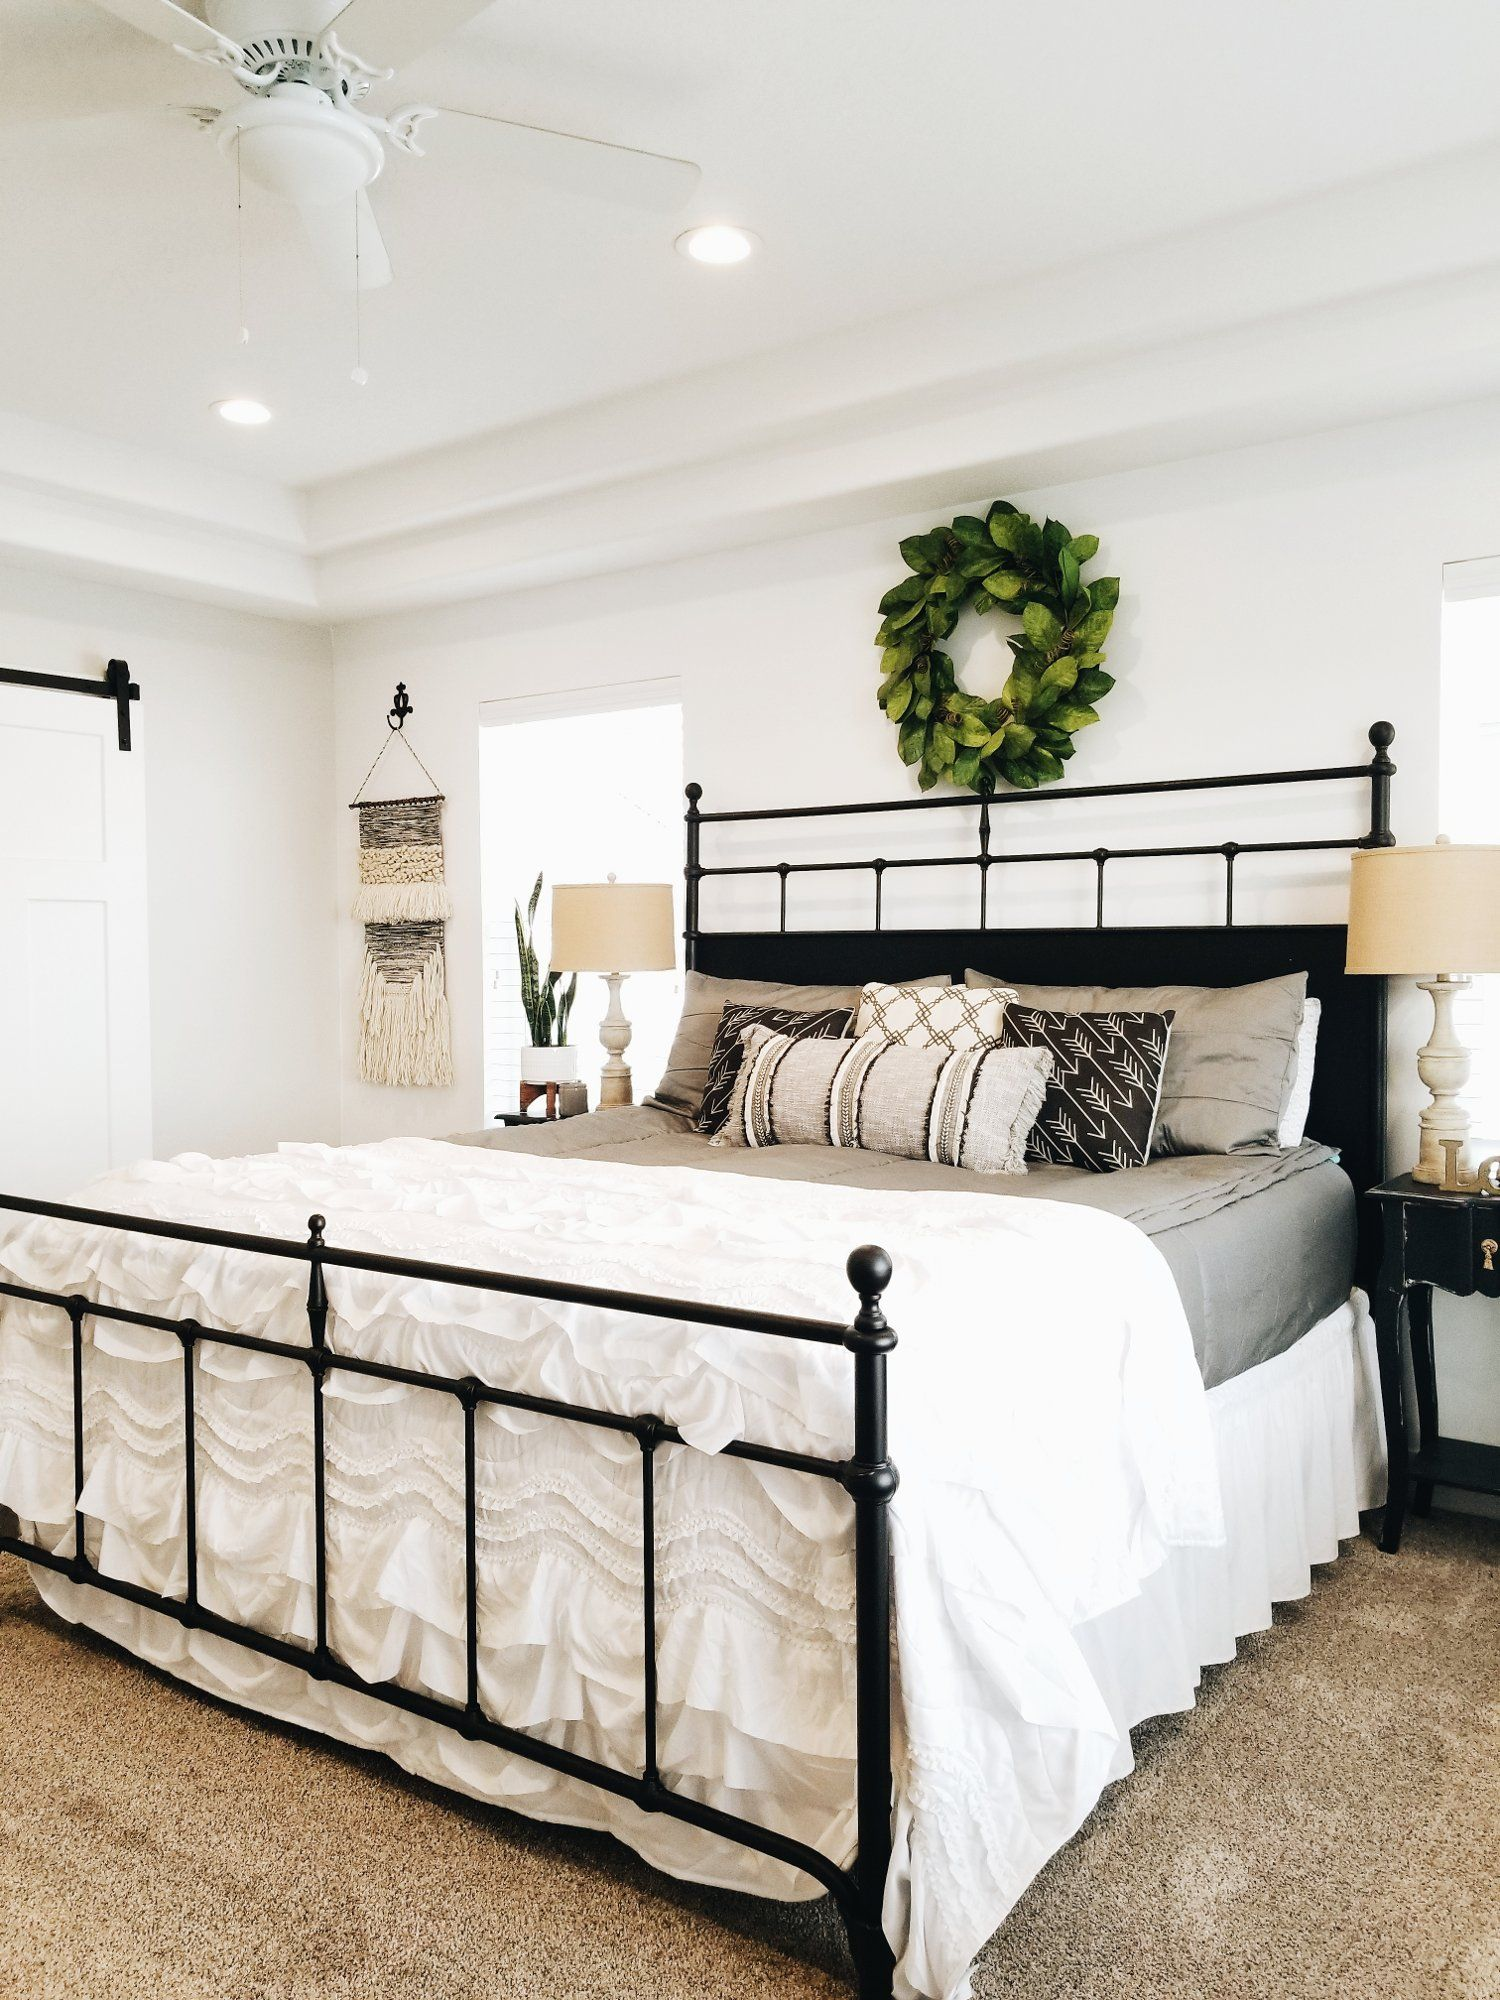 Pin By Jazmine Lopez On Rooms In 2020 King Metal Bed Master Bedrooms Decor Farmhouse Master Bedroom